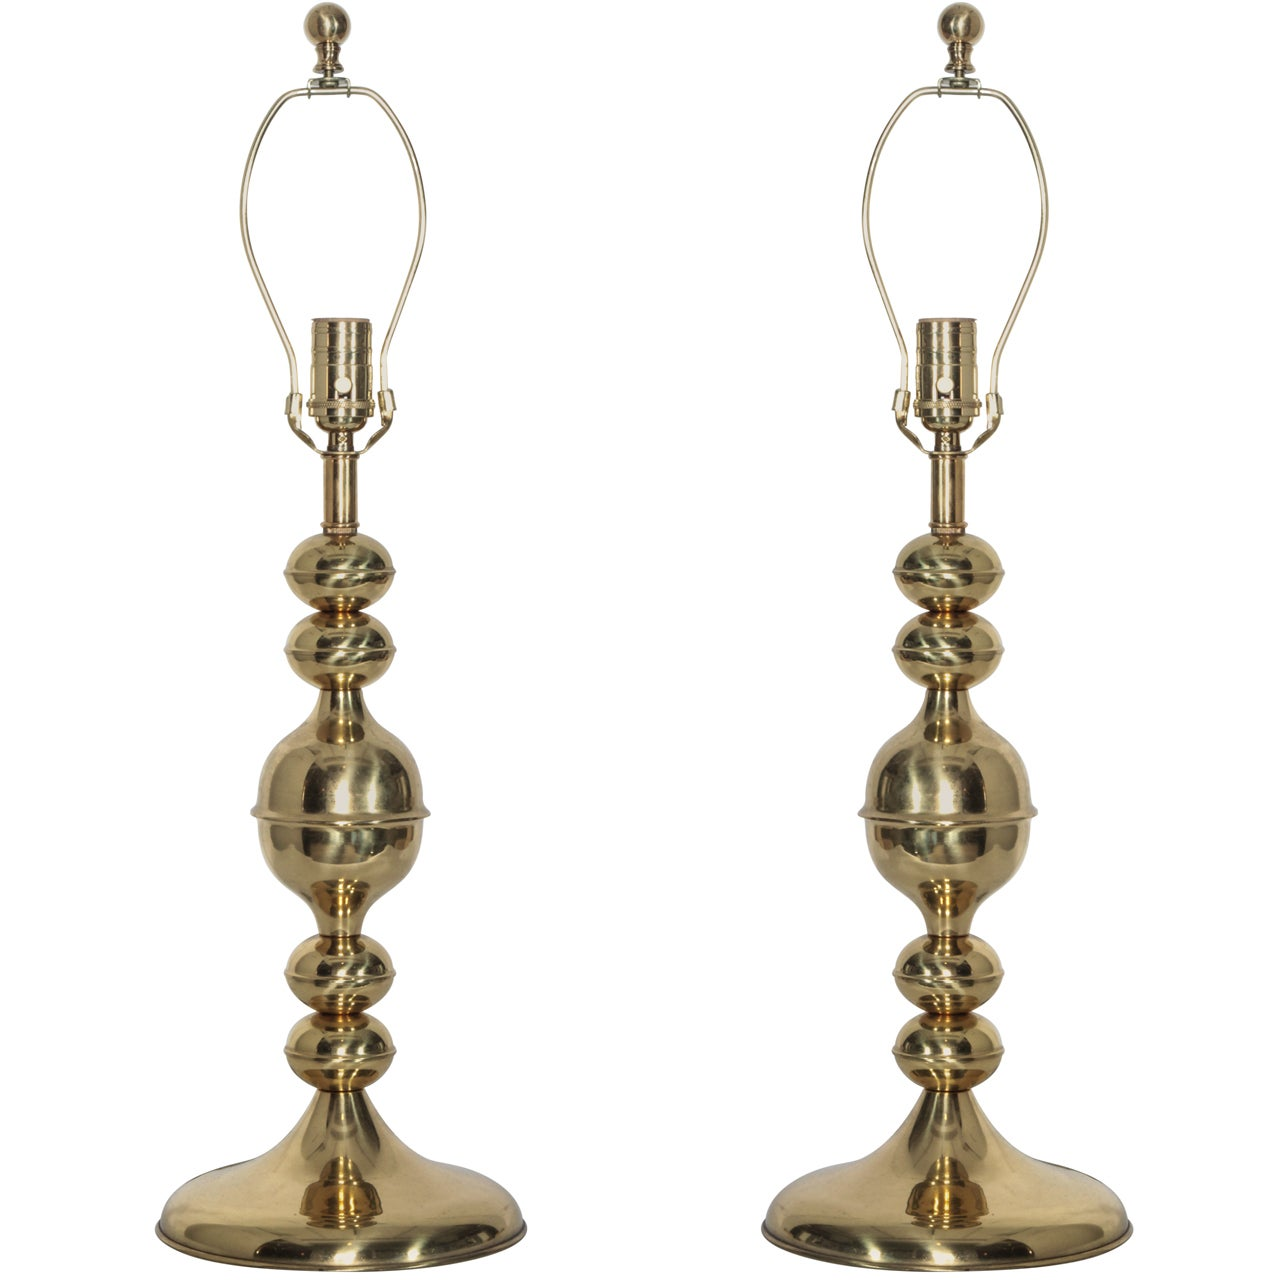 Pair of Brass Kosta Table Lamps, circa 1970s